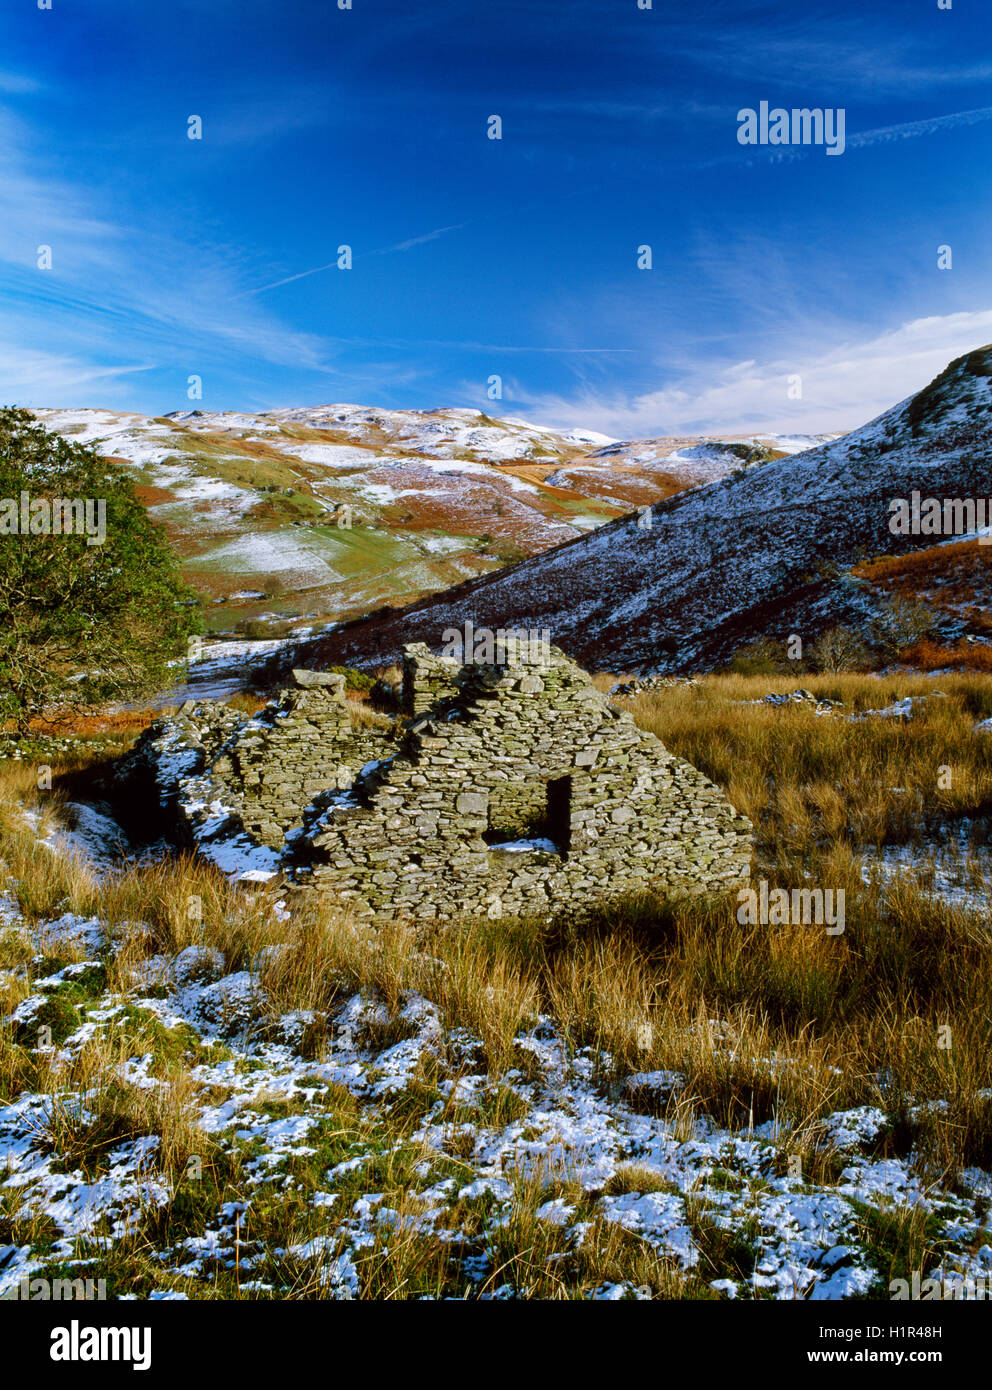 One of over a dozen abandoned and ruined farmsteads in the Mwyro Valley, a remote but once populated & well - Stock Image